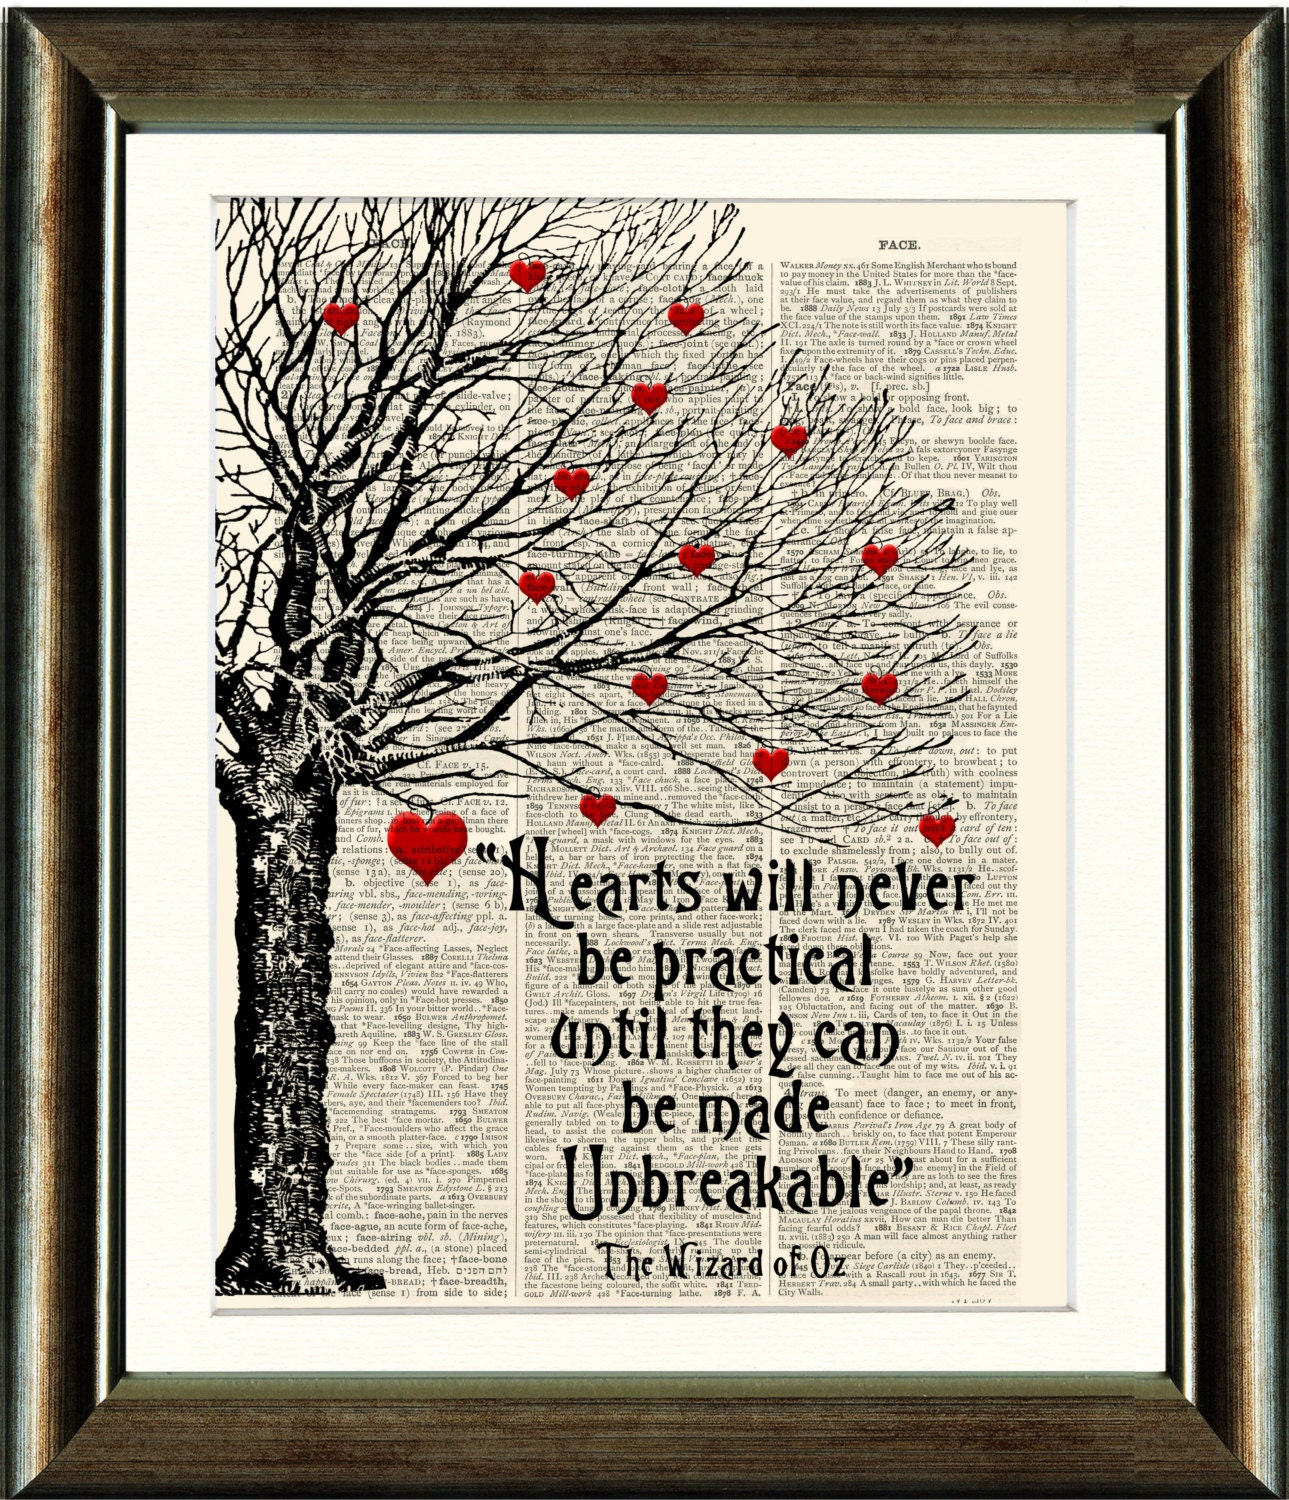 Wizard Of Oz Love Quotes Wizard Of Oz Heart Quote Vintage Book Page Print Image On A